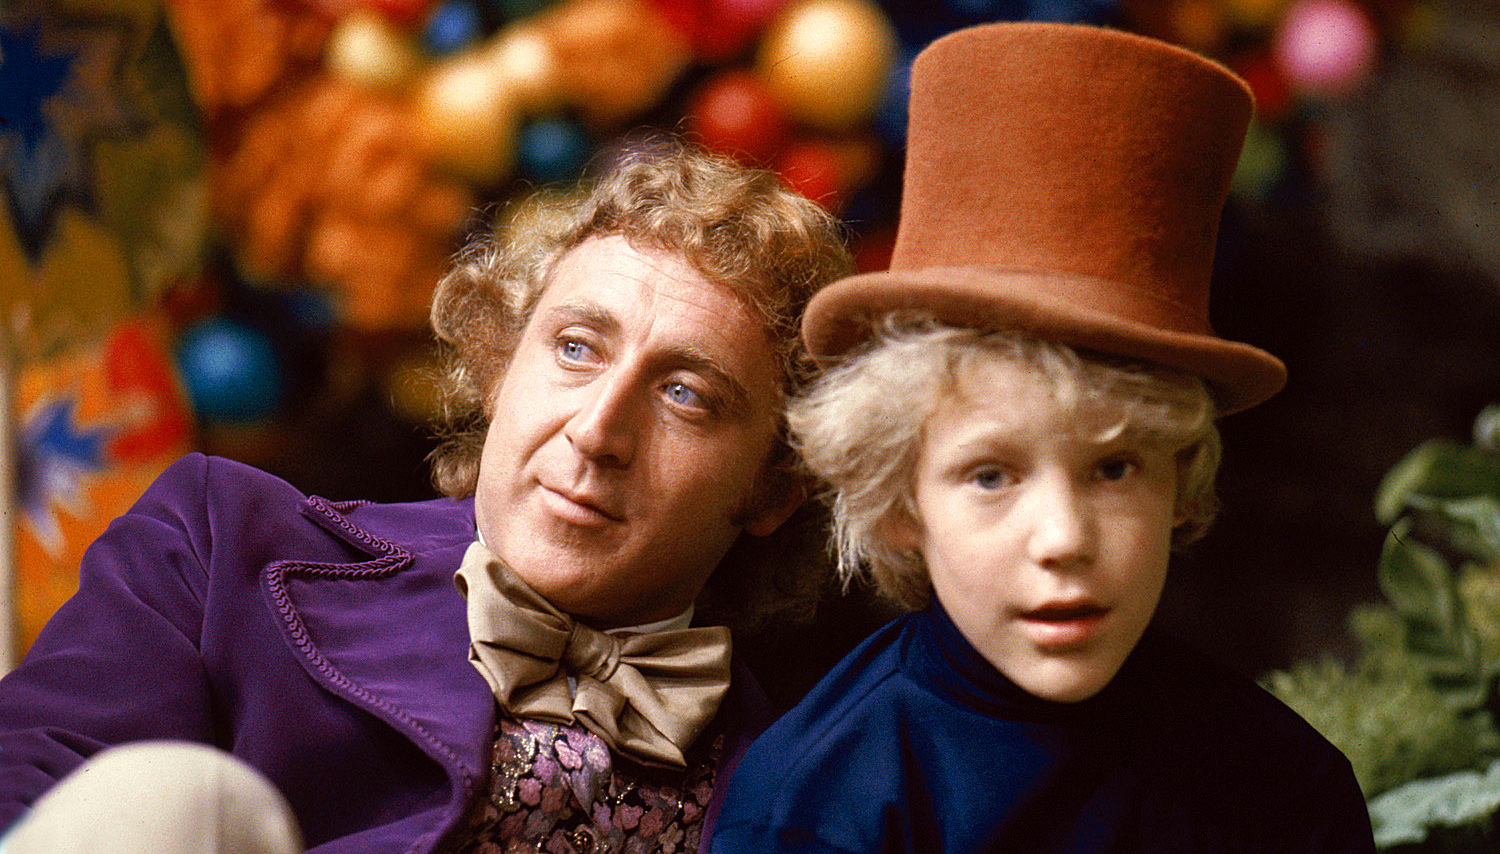 Charlie-and-Willy-Wonka-&-the-Chocolate-Factory